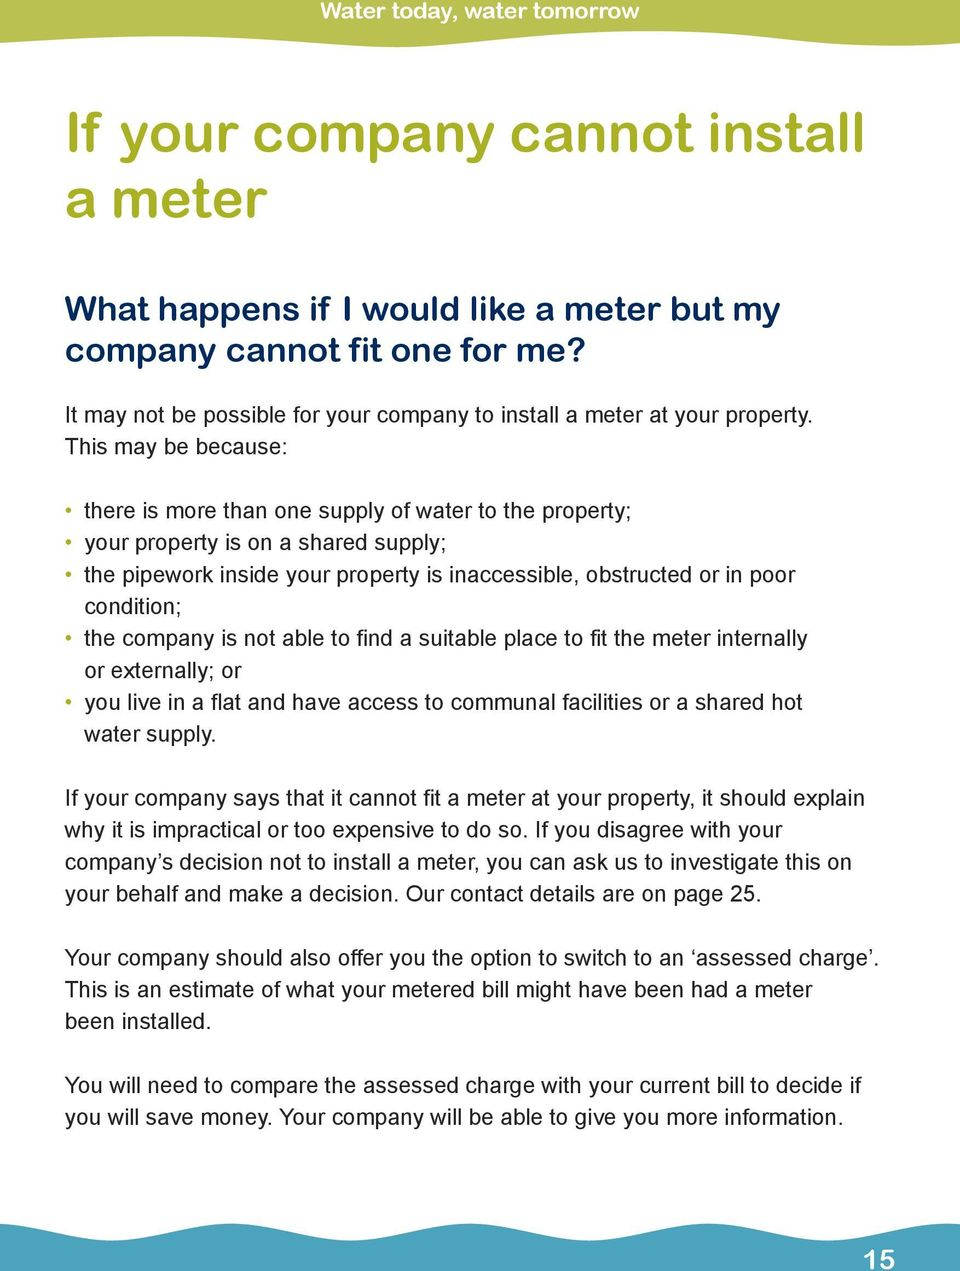 This may be because: there is more than one supply of water to the property; your property is on a shared supply; the pipework inside your property is inaccessible, obstructed or in poor condition;